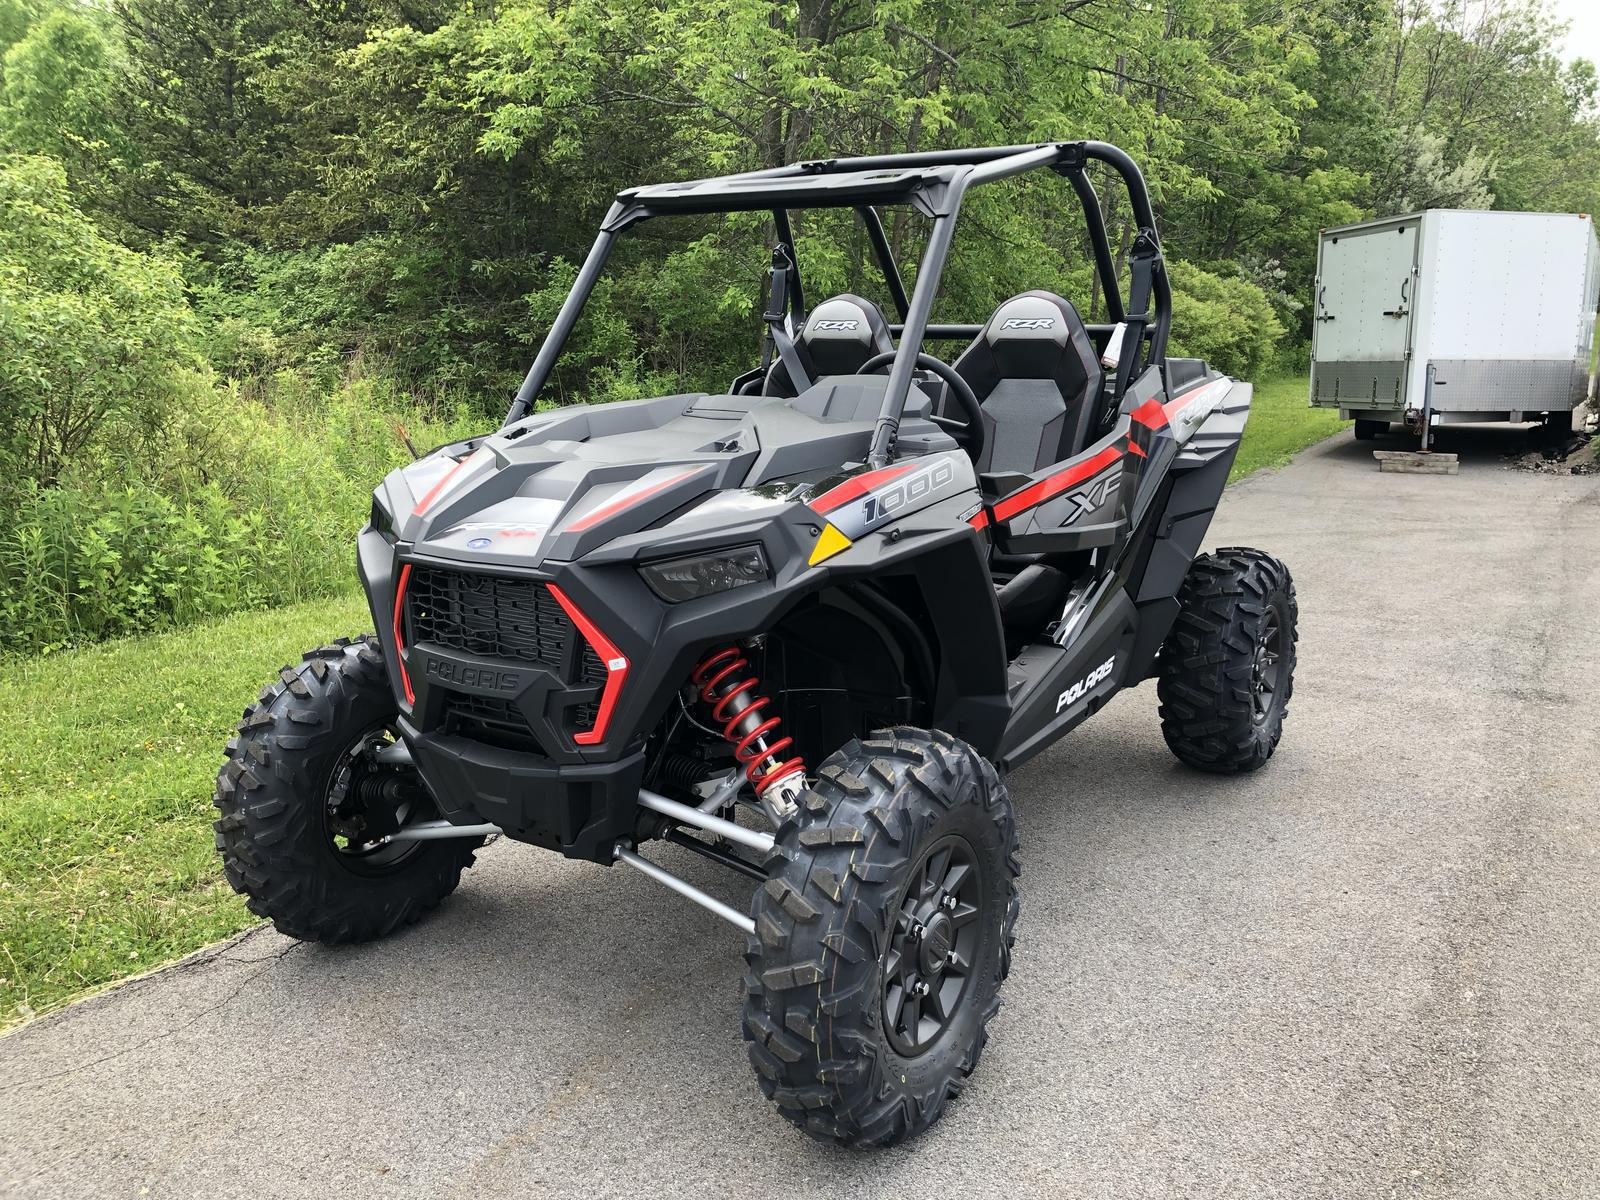 2019 Polaris Industries RZR XP 1000 - Black Pearl  Plus Freight  3 99% for  36 Months